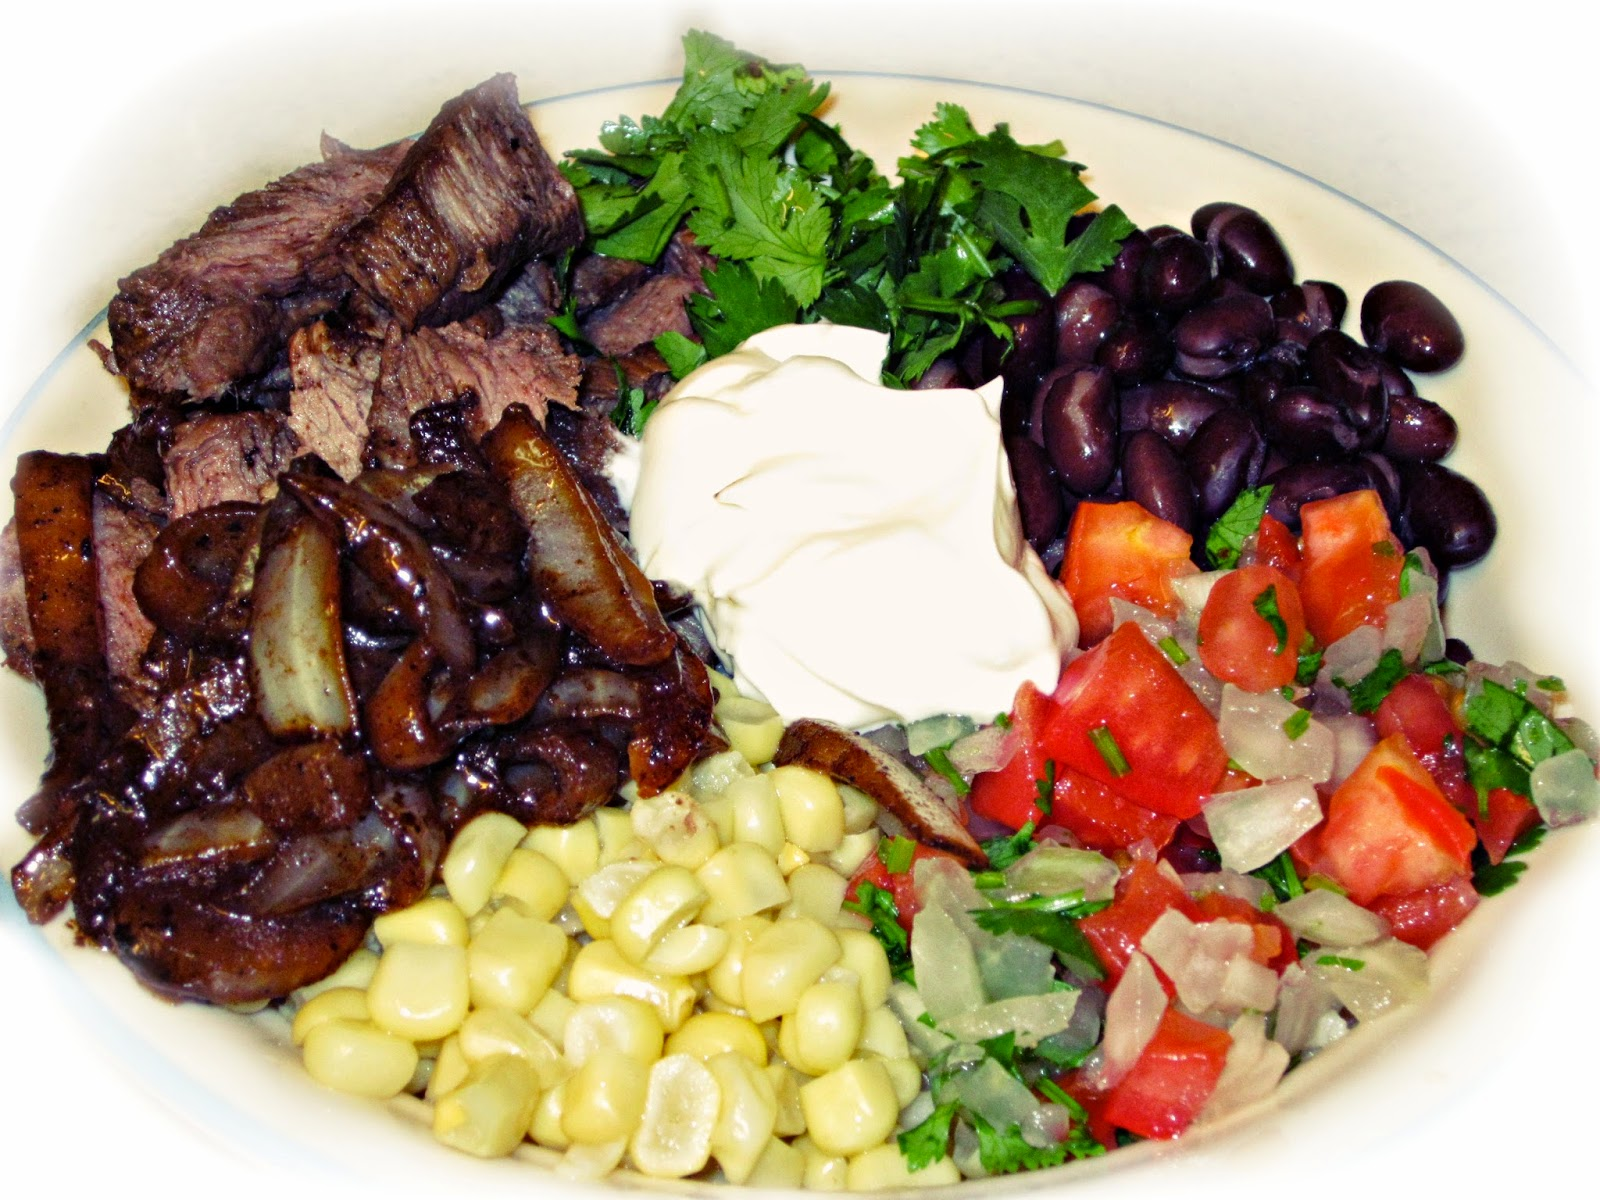 Southwest Steak Bowls: AJcrazies by AJK